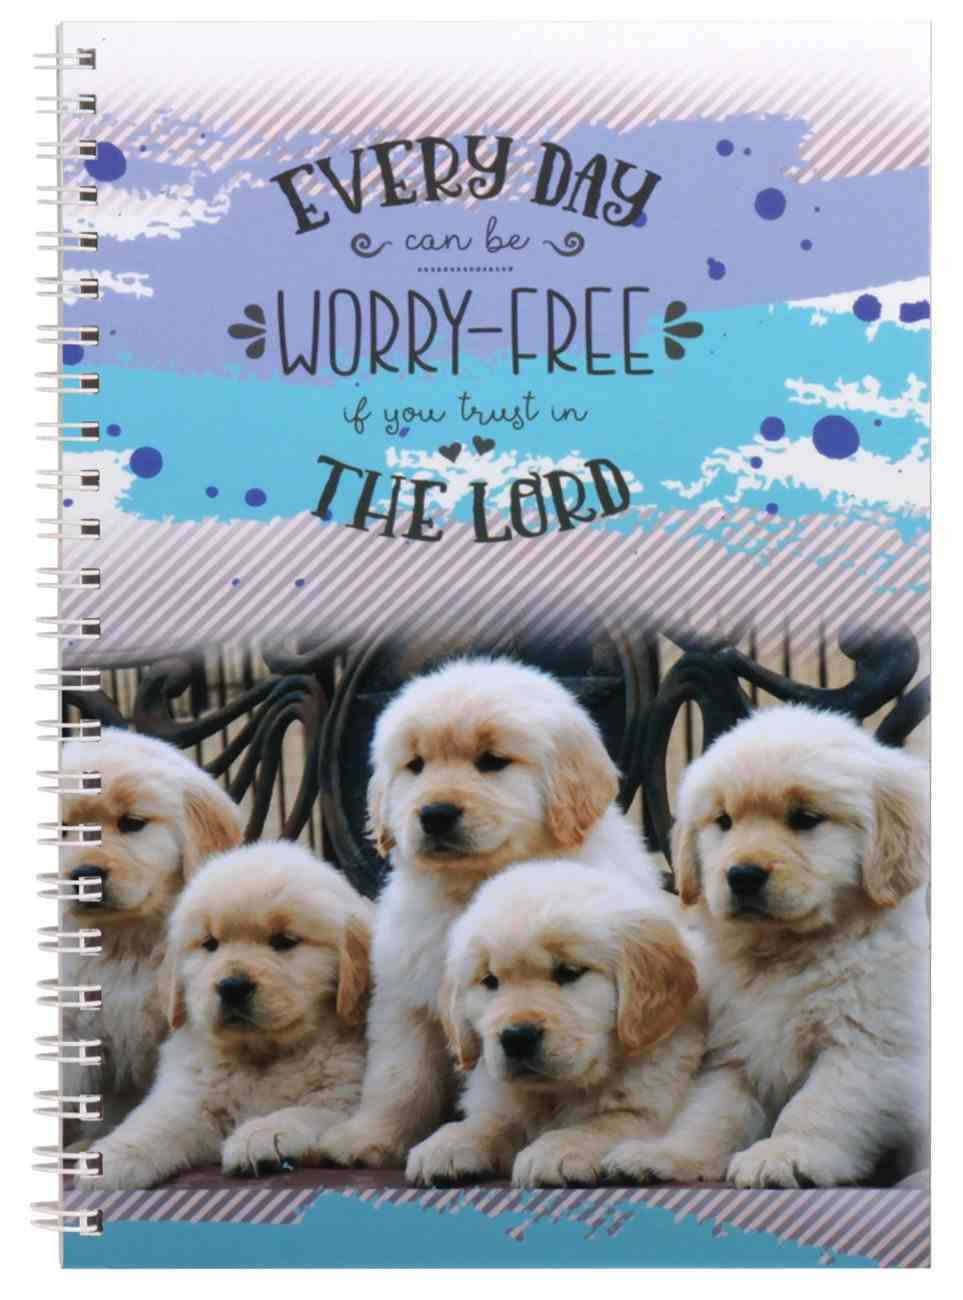 Spiral Softcover Journal: Puppies, Everyday Can Be Worry Free If You Trust in the Lord Spiral